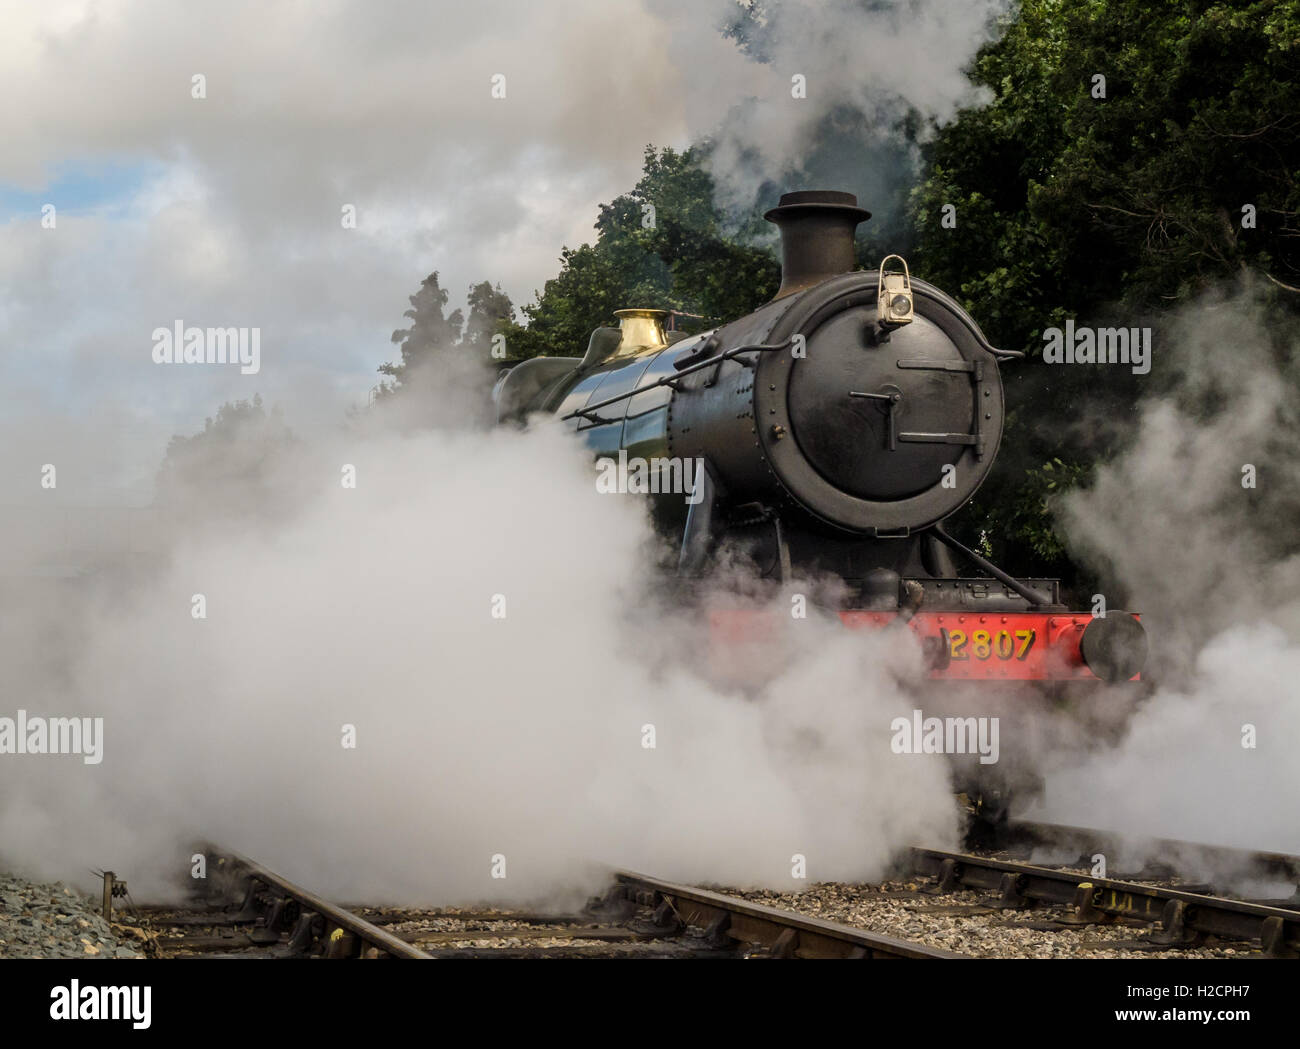 Railway locomotive enveloped in steam at Toddington station - Stock Image